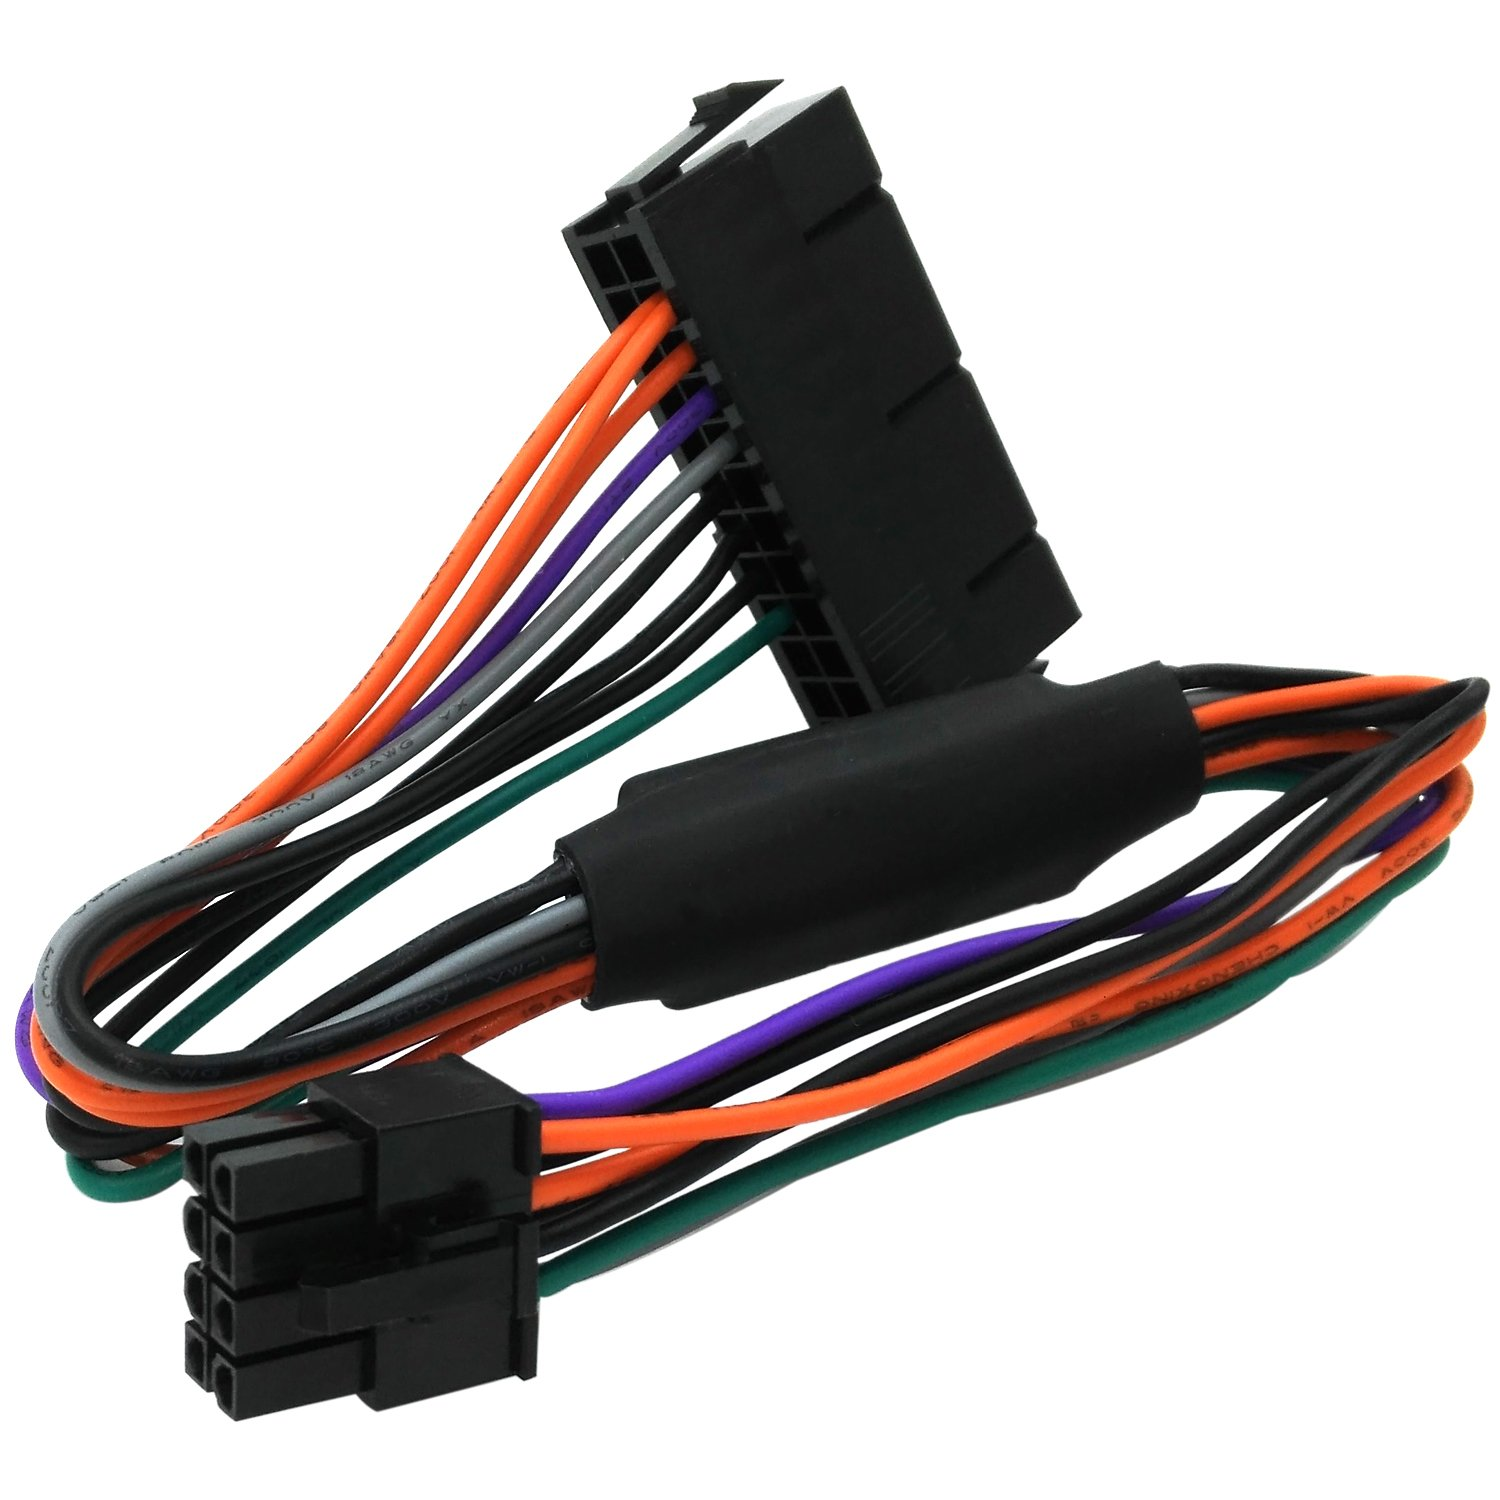 Comeap 24 Pin To 8 Atx Psu Power Adapter Cable 1000w Dell Supply Wiring Diagram Compatible With Optiplex 3020 7020 9020 Precision T1700 12 Inch30cm Computers